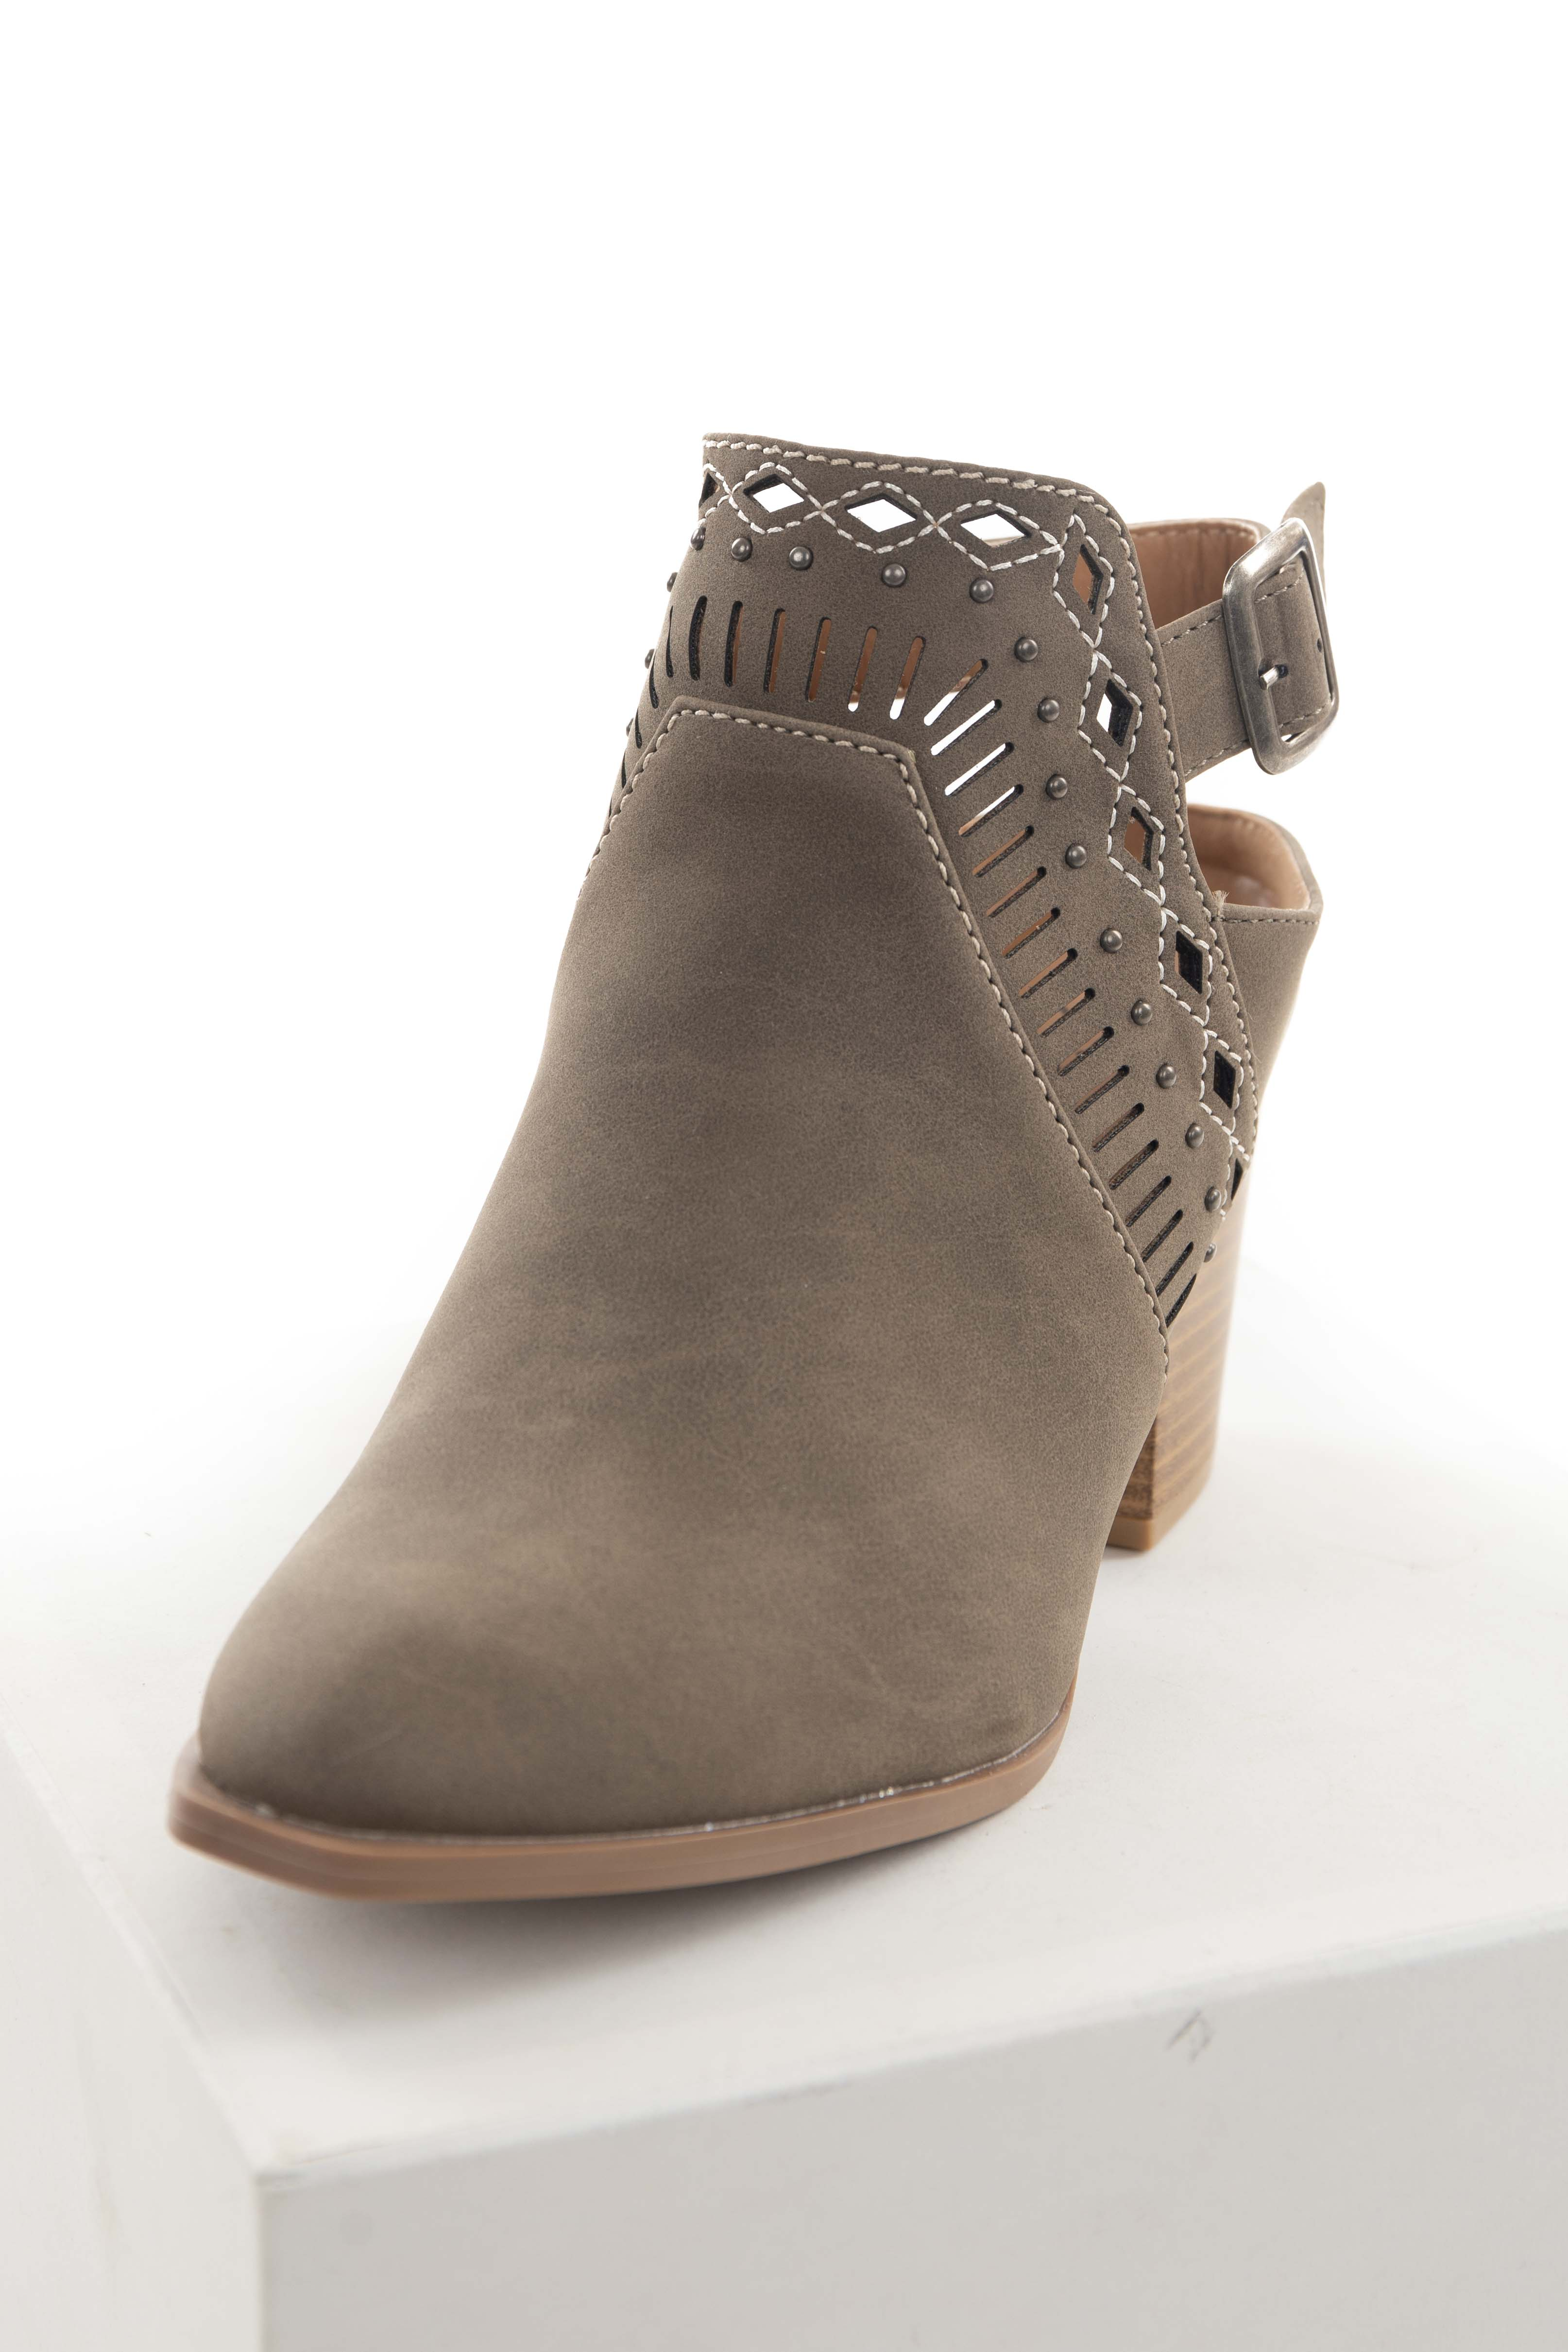 Taupe Closed Toe Booties with Studs